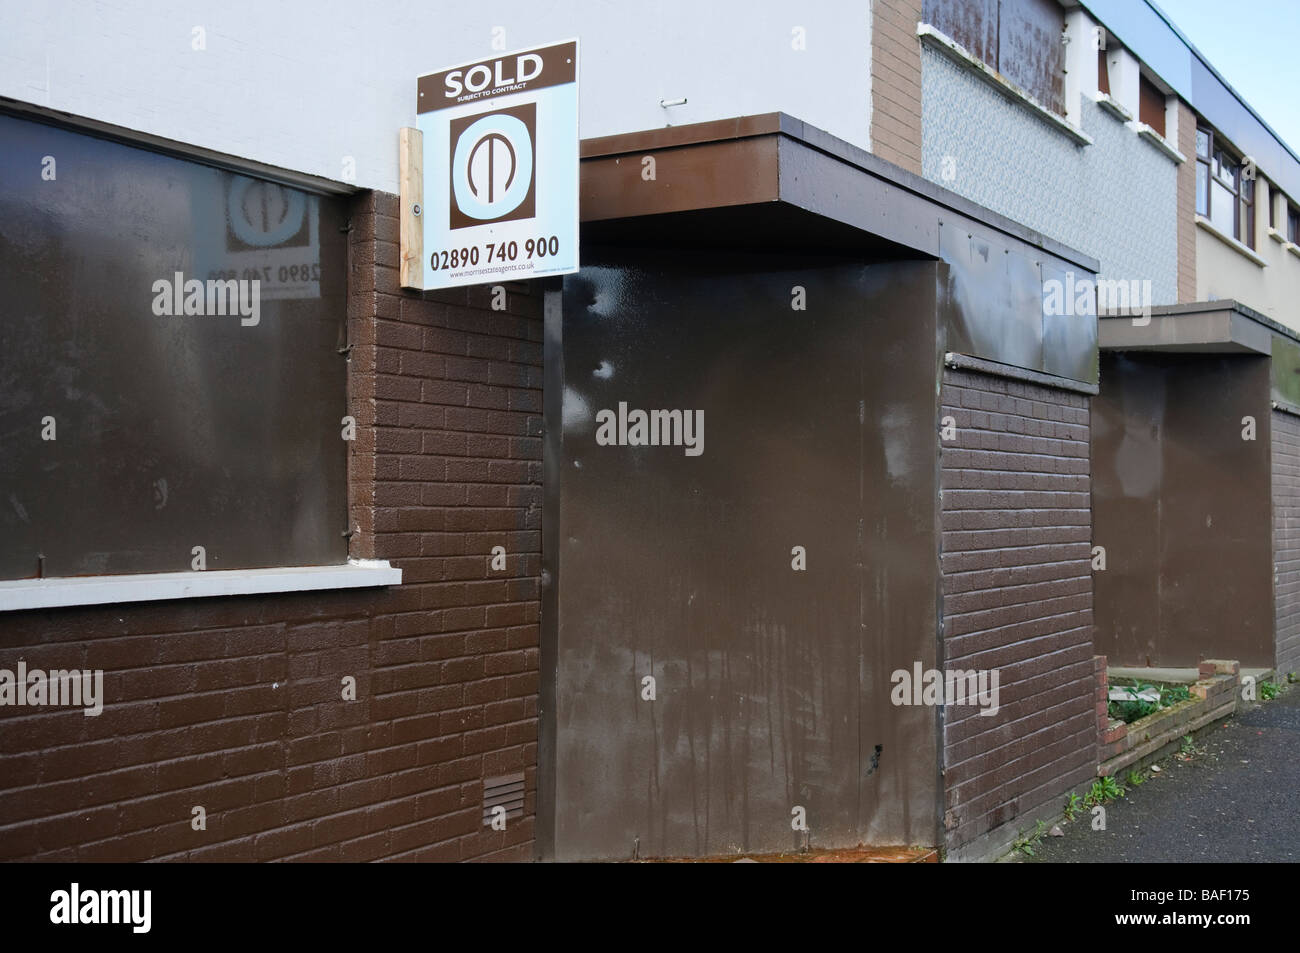 Boarded up houses with 'Sold' estate agent sign. - Stock Image